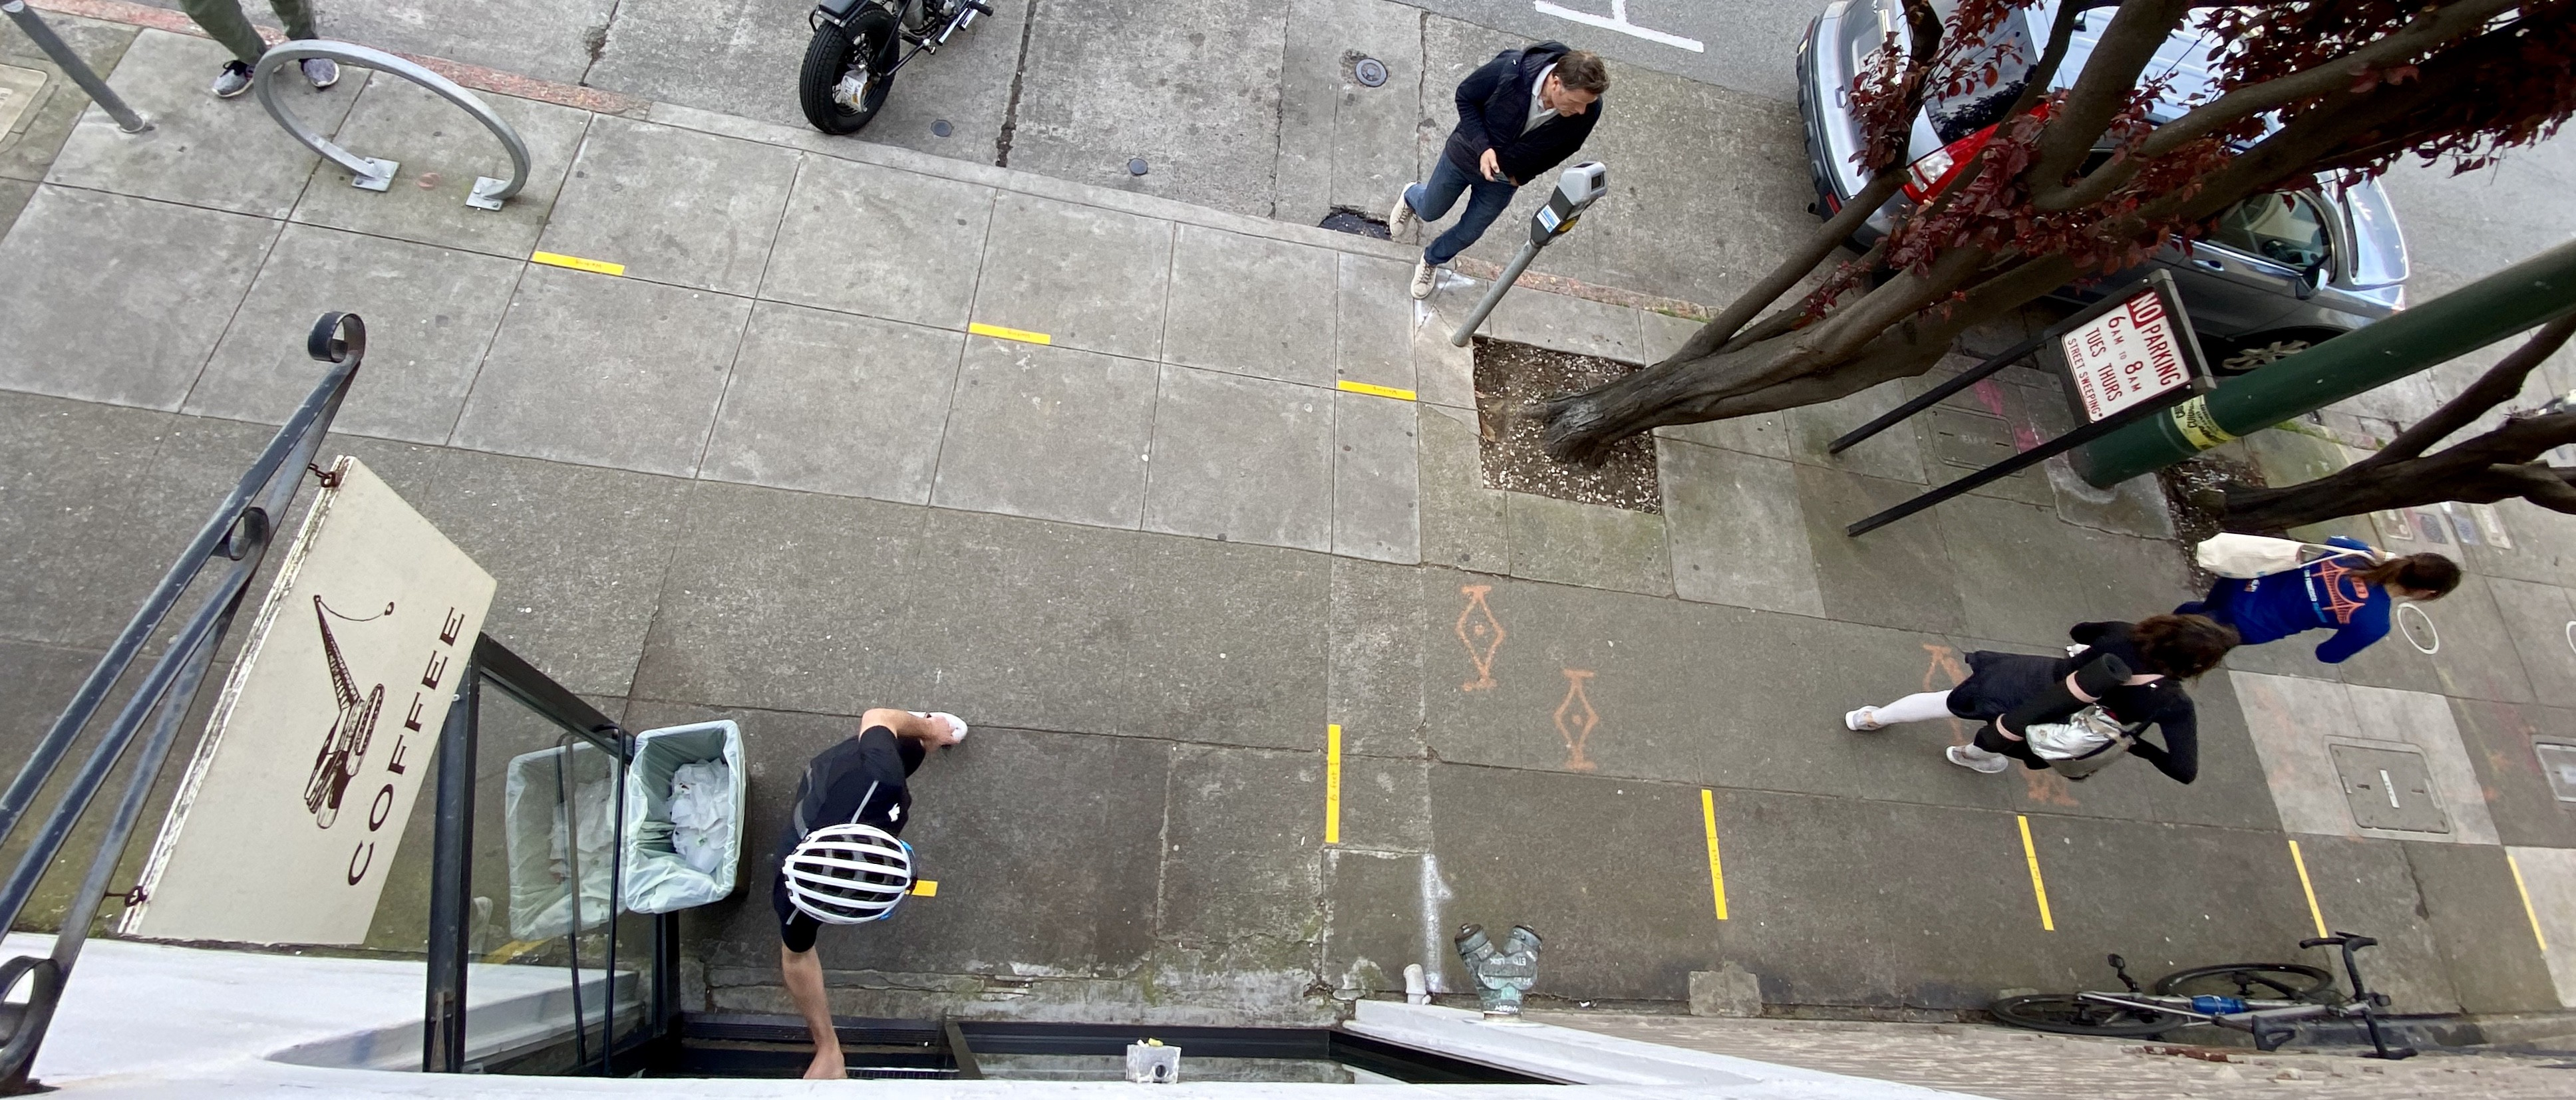 an overhead photo of the sidewalk with yellow tape lines indicating where people should stand